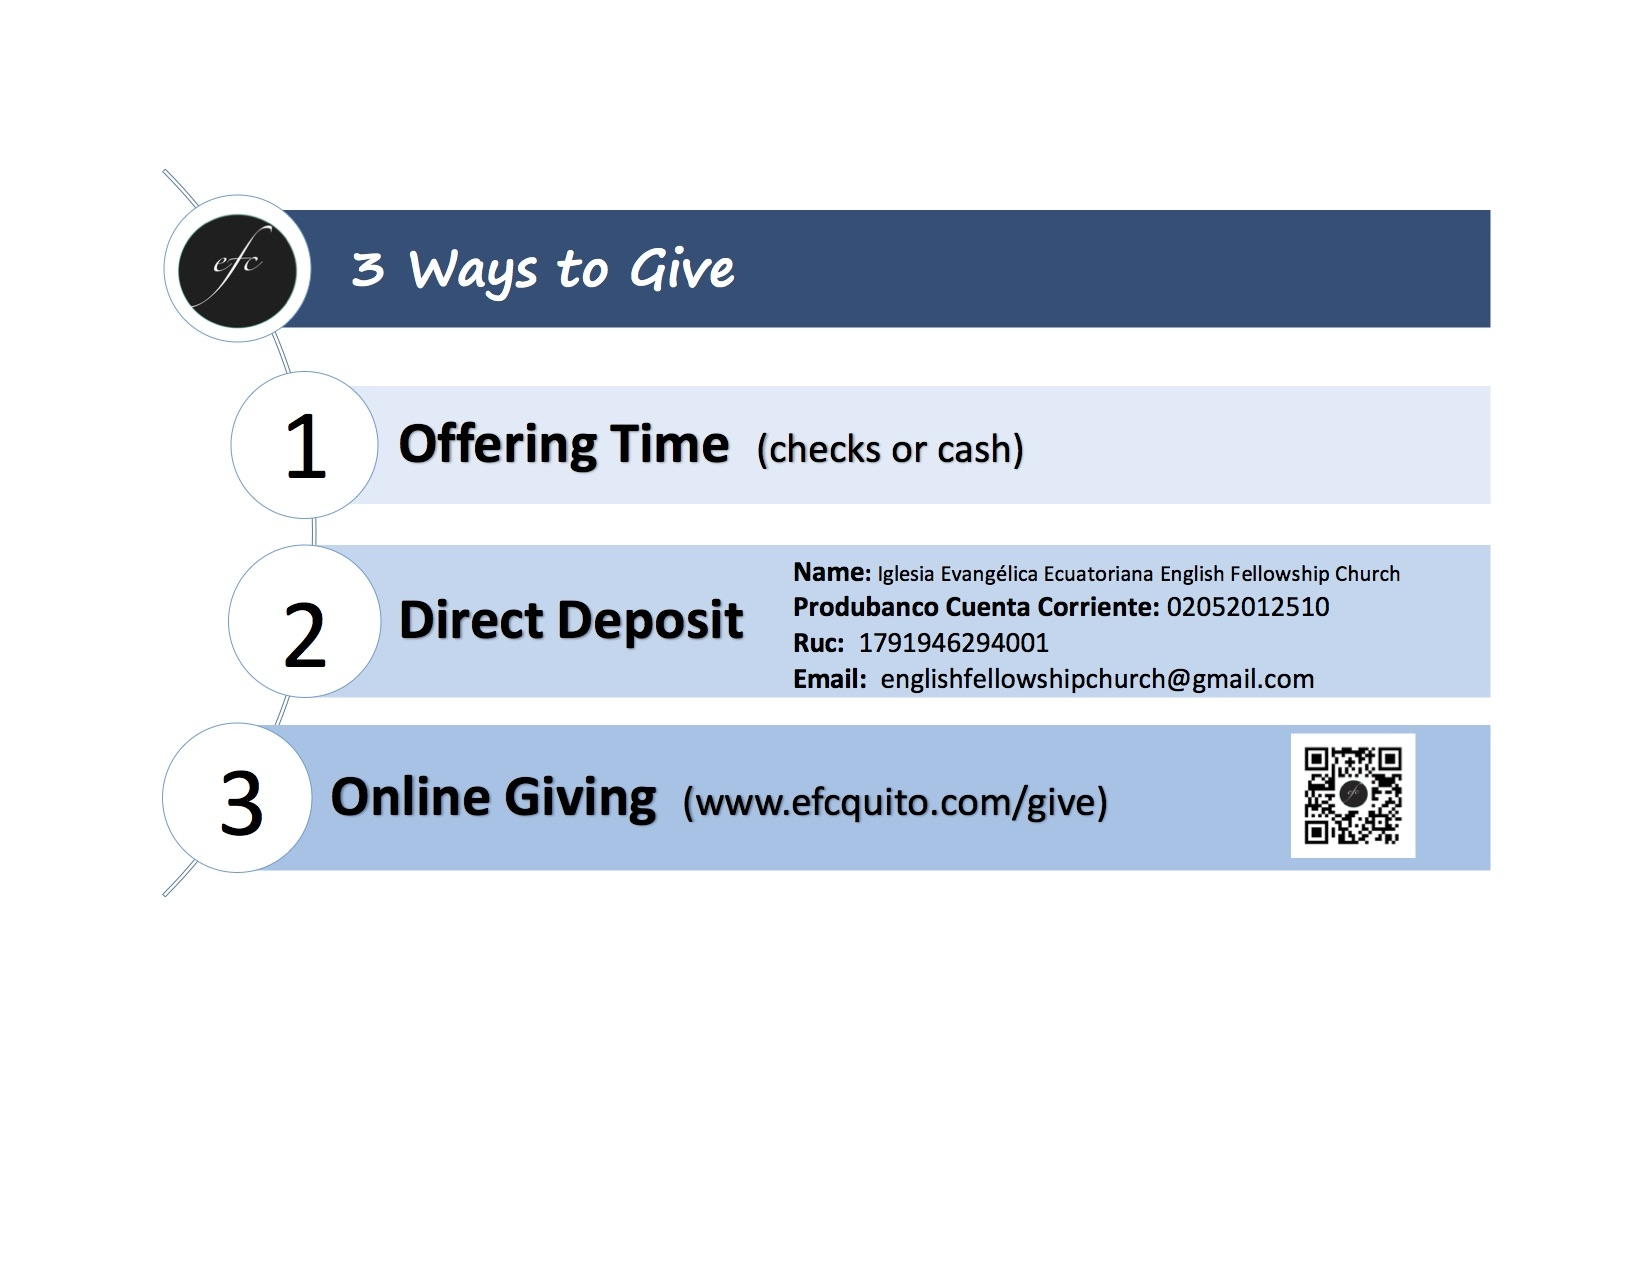 3-Ways-to-Give.jpg